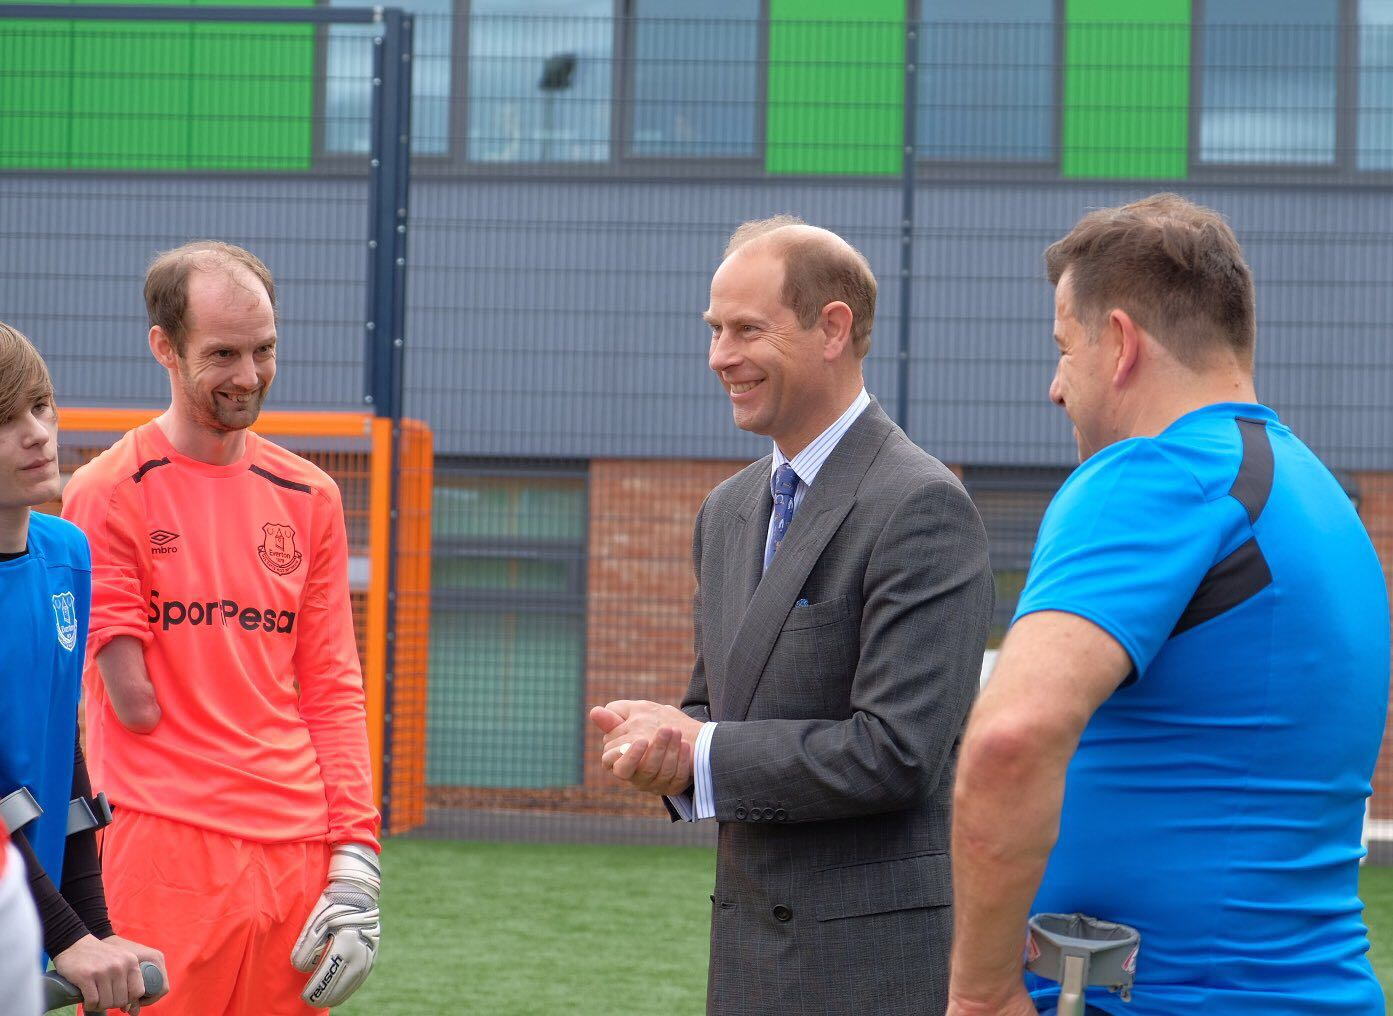 The Earl of Wessex meets an amputee football team and Everton Football Club